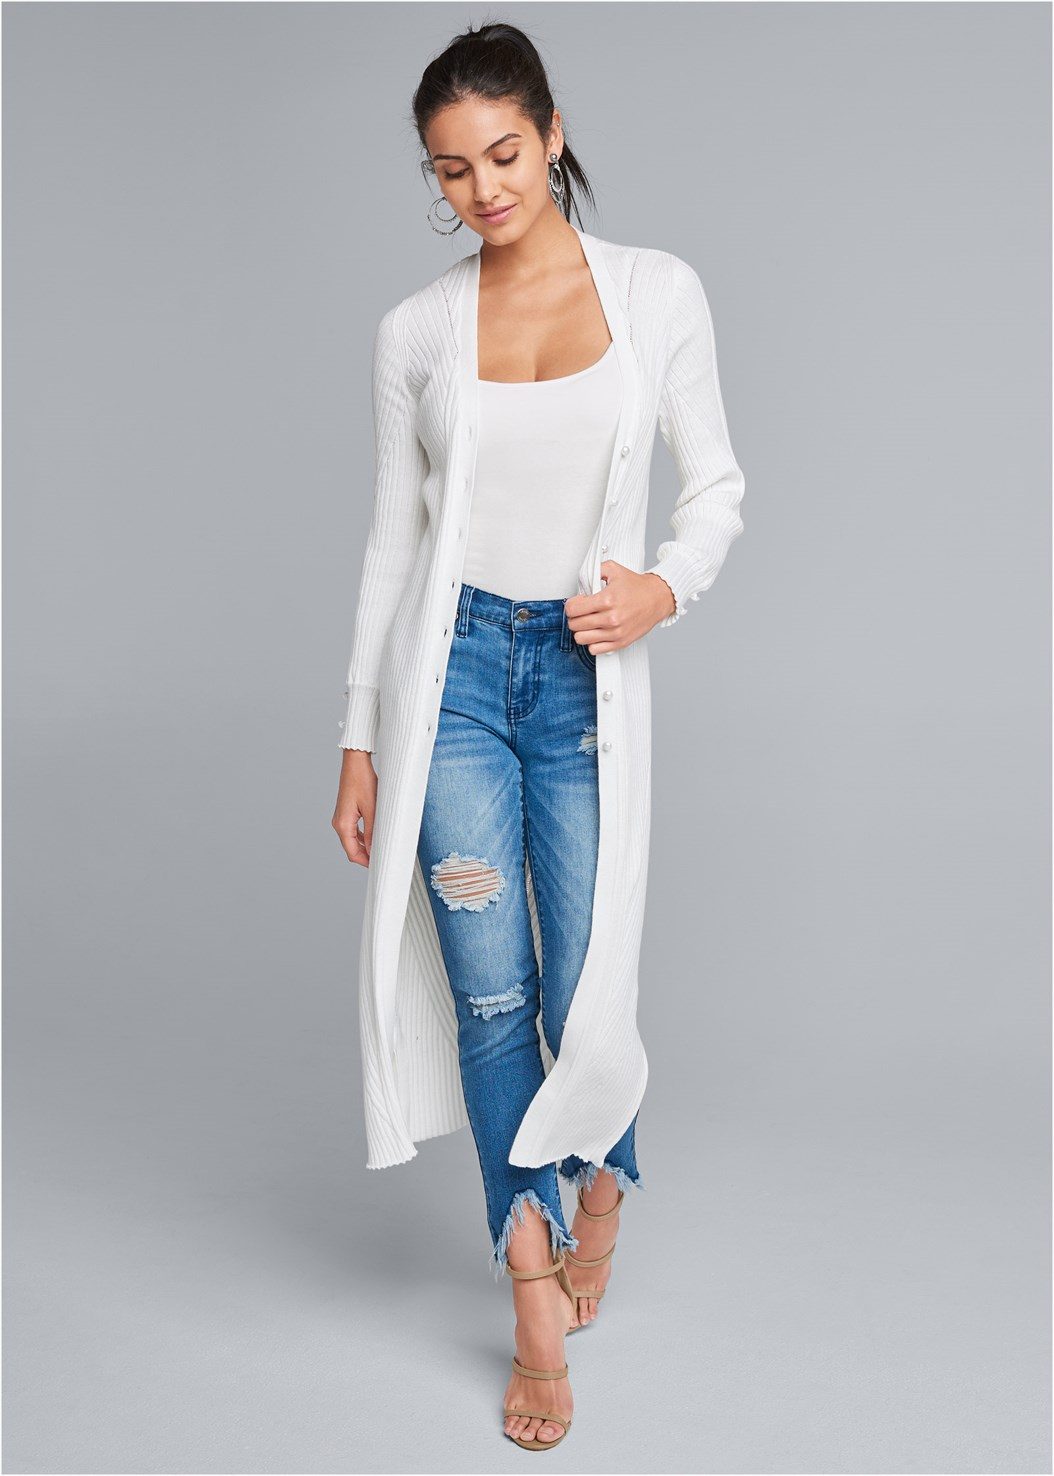 Pointelle Blouse Sleeve Duster,Basic Cami Two Pack,Triangle Hem Jeans,High Heel Strappy Sandals,Beaded Fringe Medallion Earrings,Long Chain Pendant Necklace,Studded Satchel Crossbody